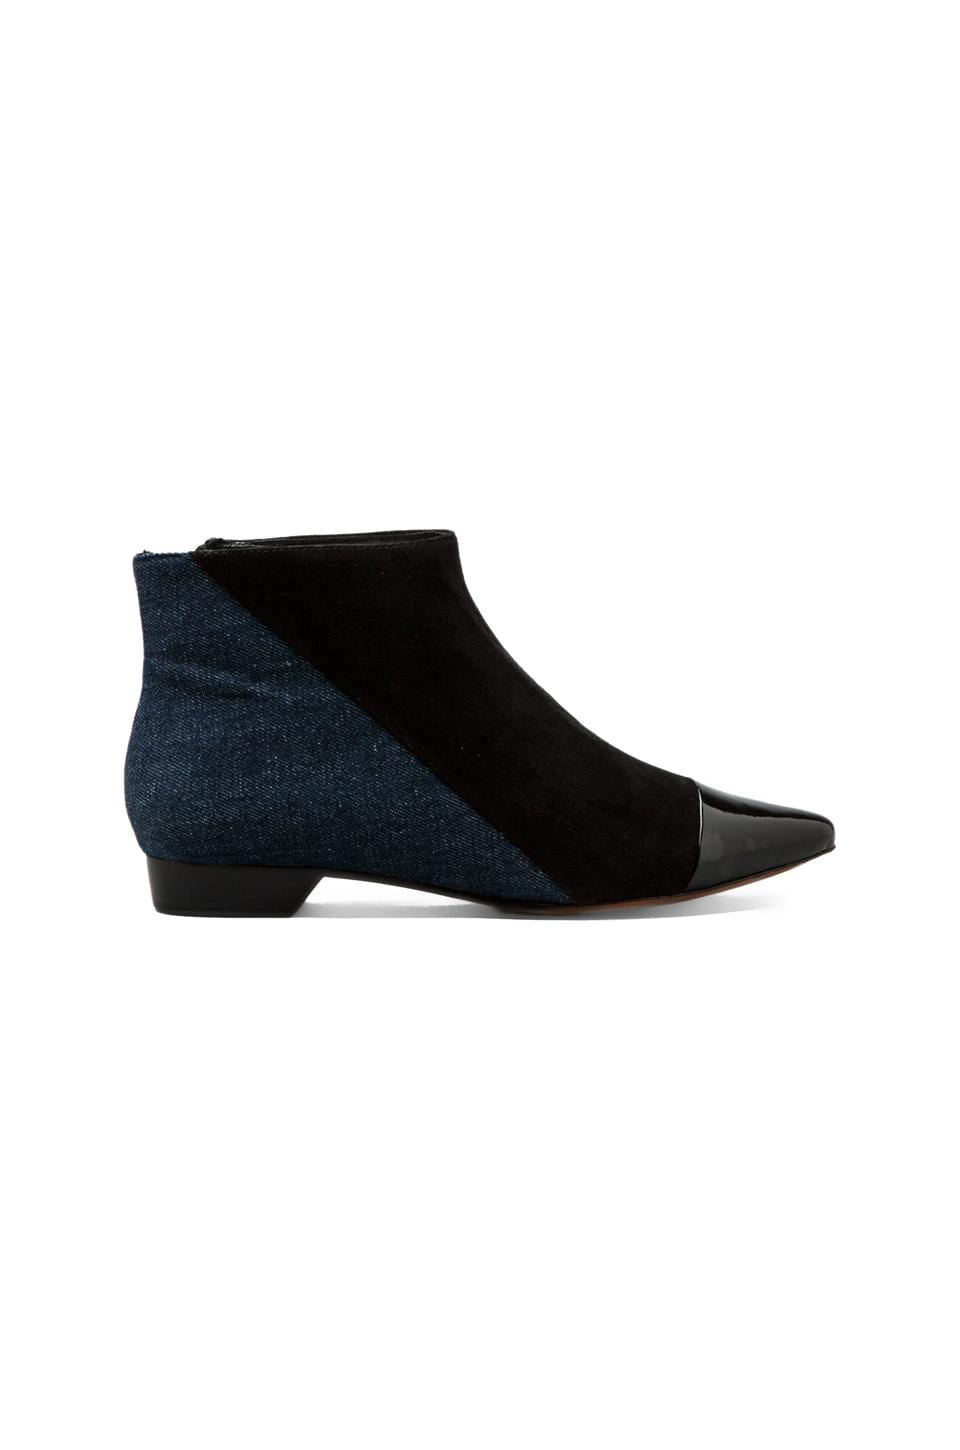 DEREK LAM 10 CROSBY Austin Boot in Black/Indigo